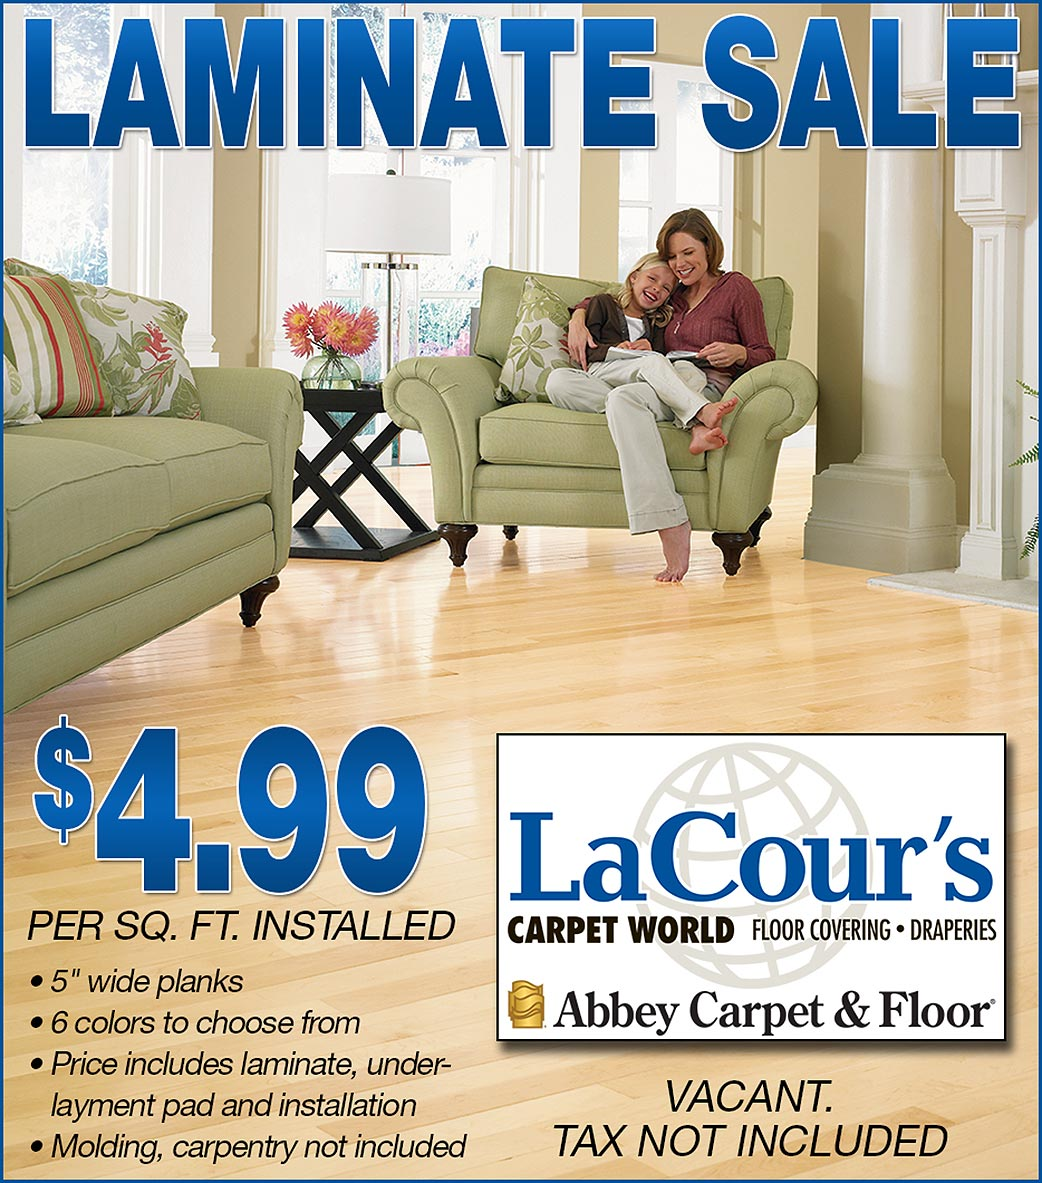 "Laminate Sale at LaCour's Carpet World in Baton Rouge - $4.99 sq/ft installed 5"" wide planks - 6 colors to choose from - price includes laminate, under-layment, pad and installation - Molding & carpentry not included - tax not included"